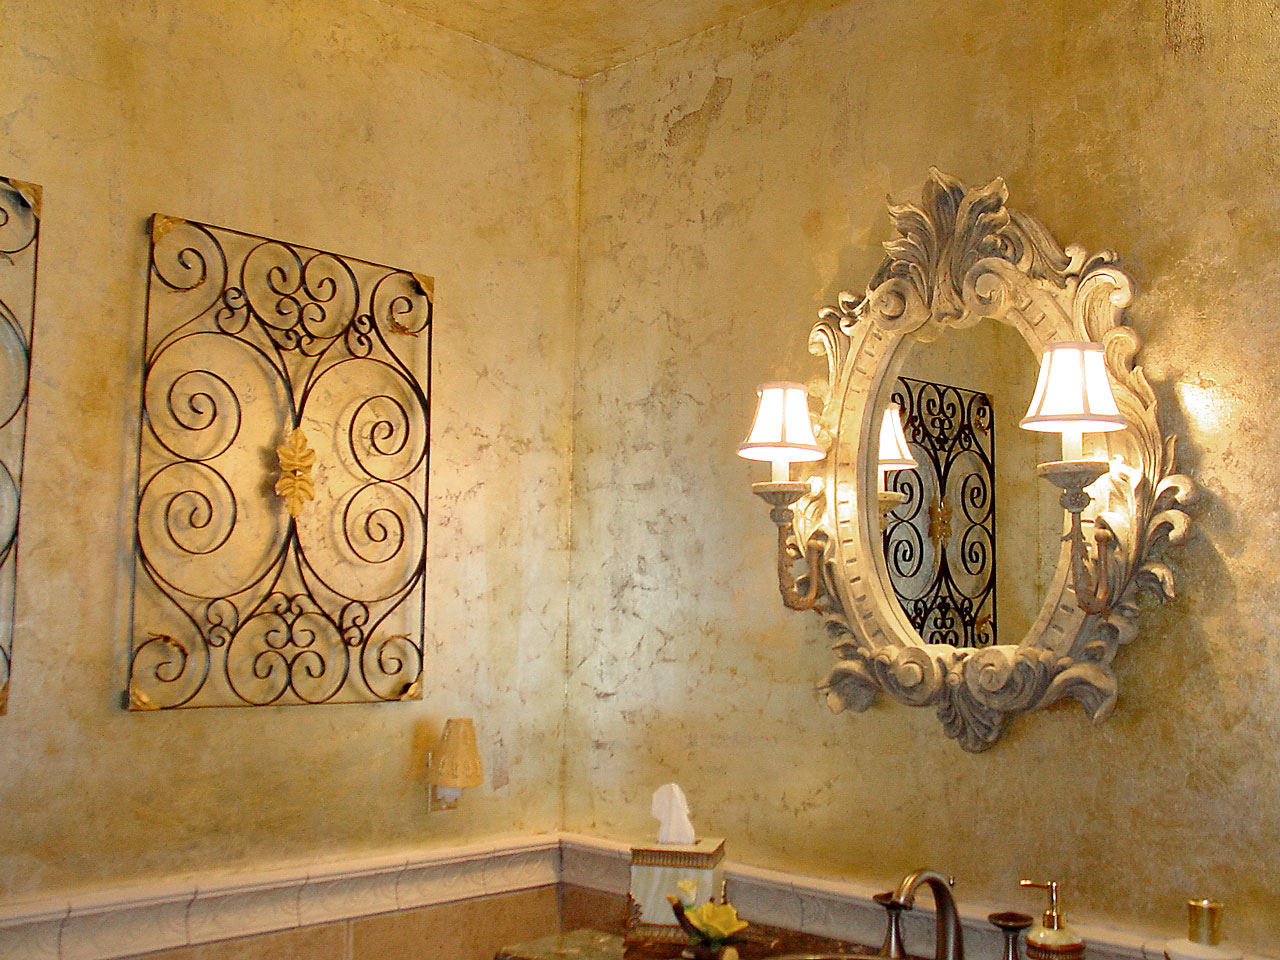 Interior decorating faux painting and finishes Daytona Beach FL Orlando